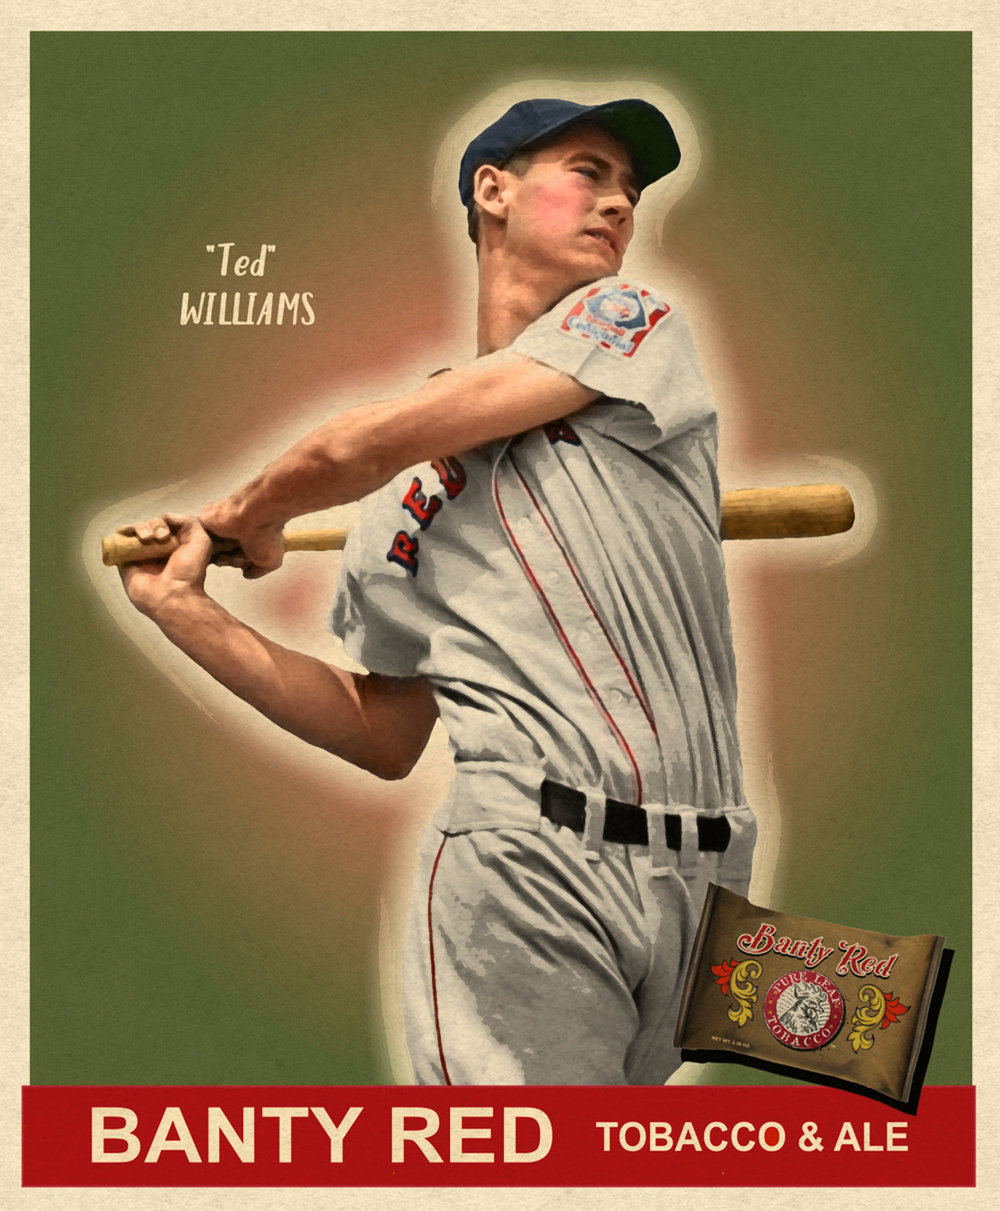 1940 R319 SERIES - TED WILLIAMS  3/27/17 Auction Closes at 159.00 USD, Current Population of 4